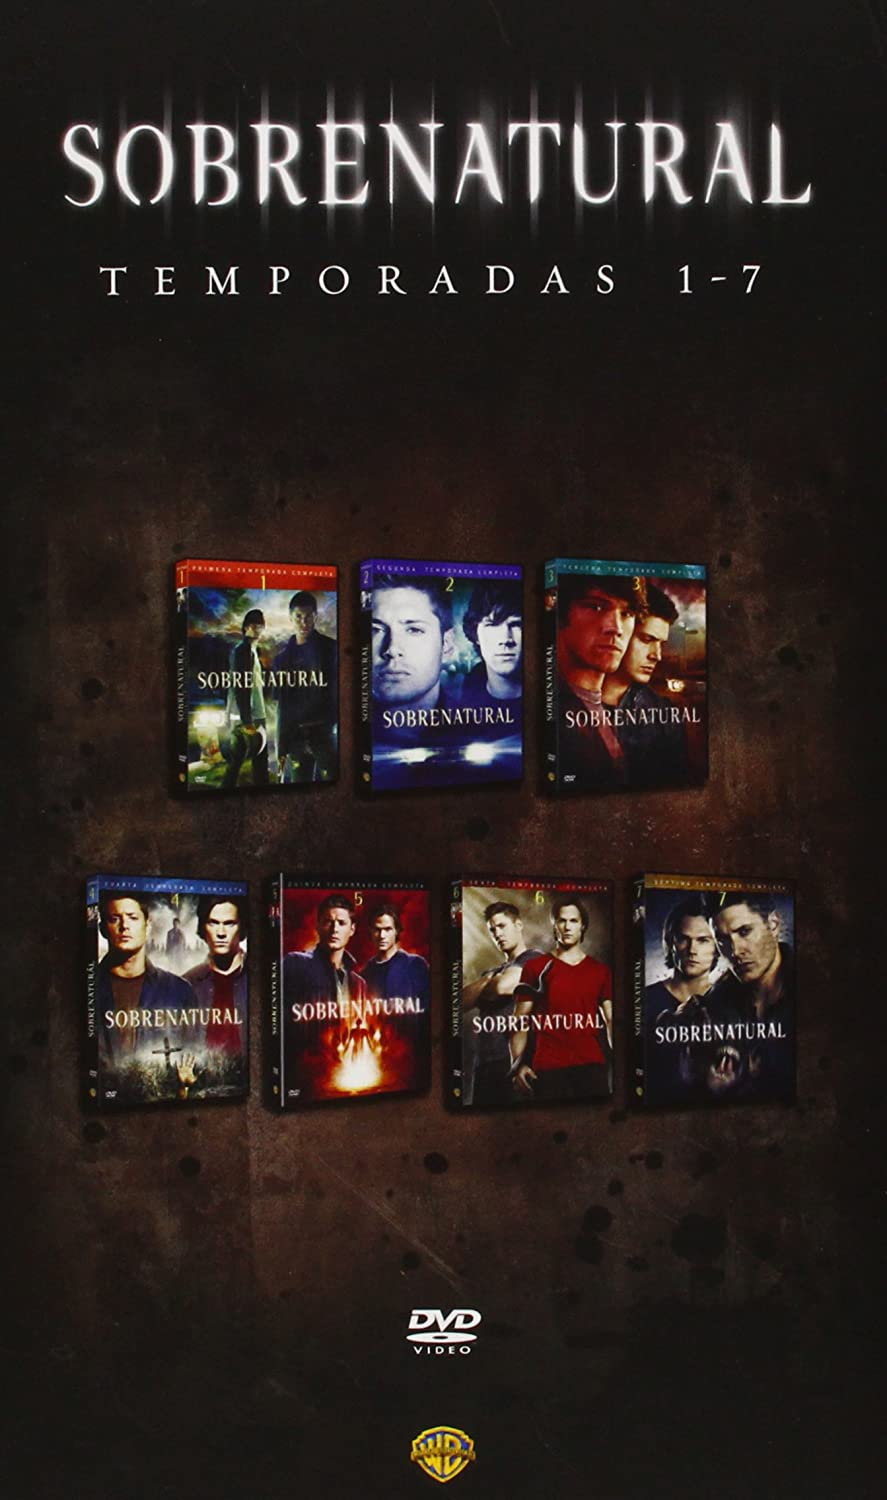 Pack Sobrenatural - Temporadas 1-7 [DVD]: Amazon.es: Jared Padalecki, Jensen Acklés, Eric Kriple, Jared Padalecki, Jensen Acklés: Cine y Series TV